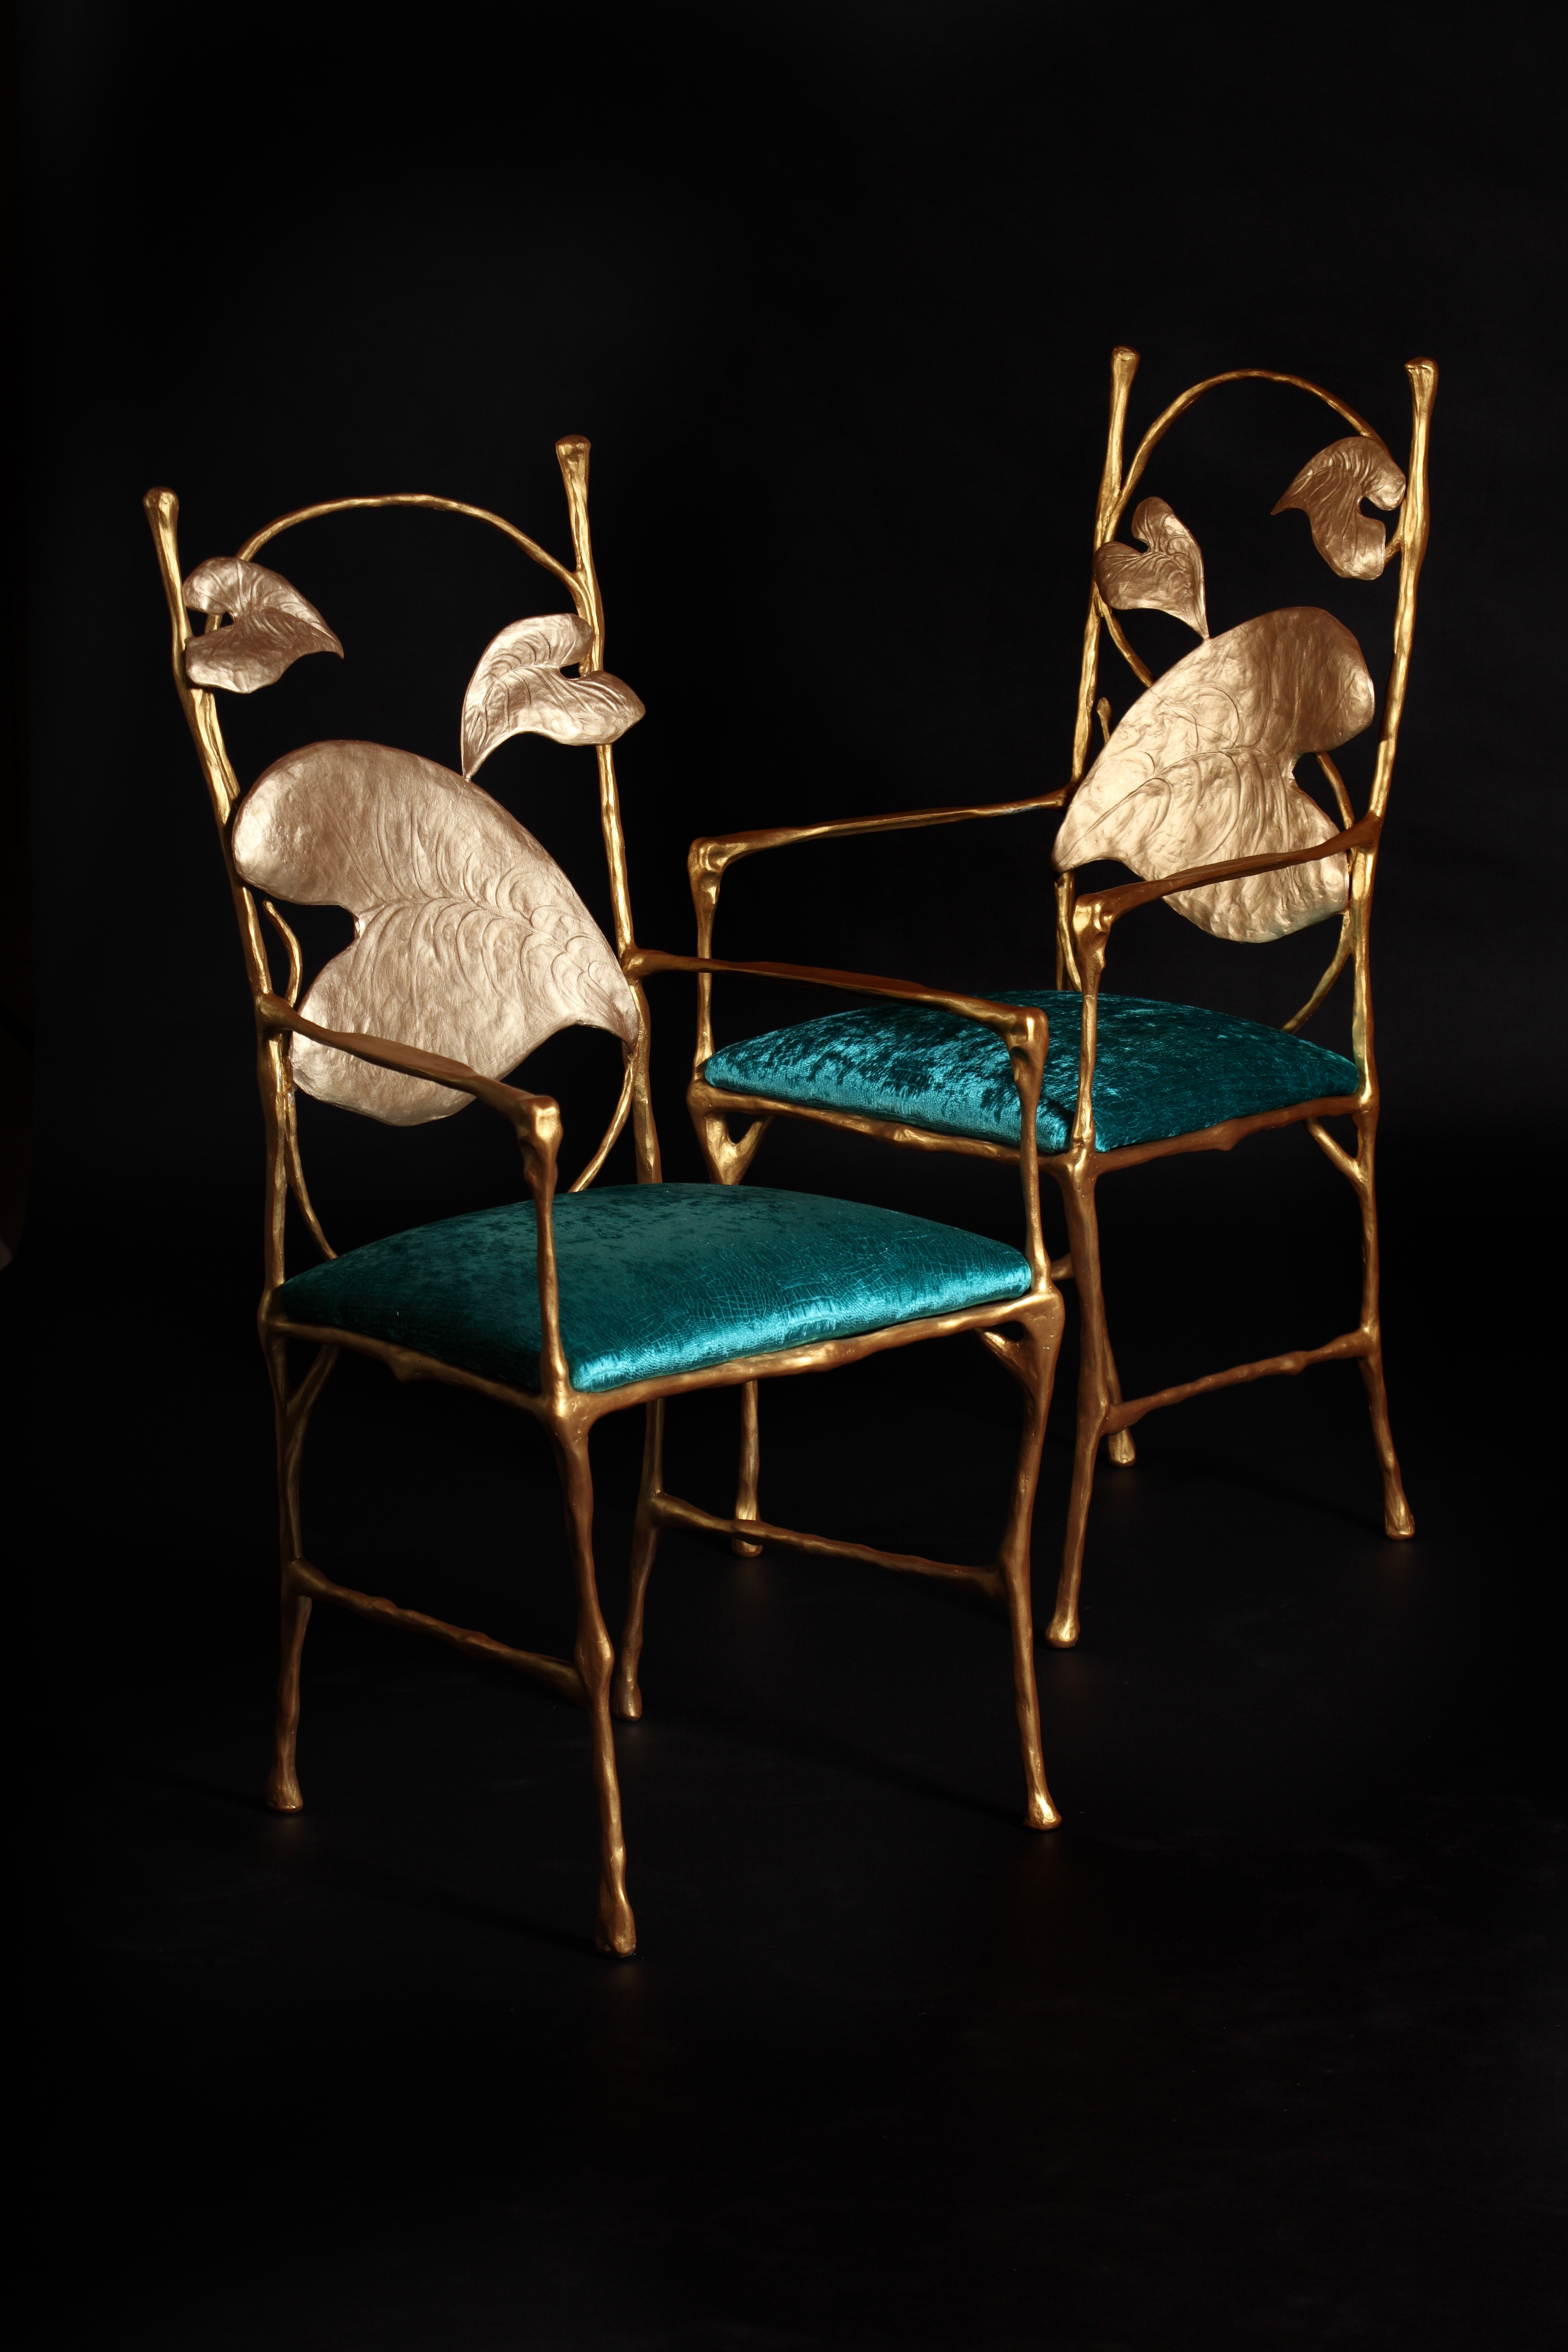 Hand sculpted bronze chairs with teal velvet seats are a bespoke furniture commission by Splinterworks